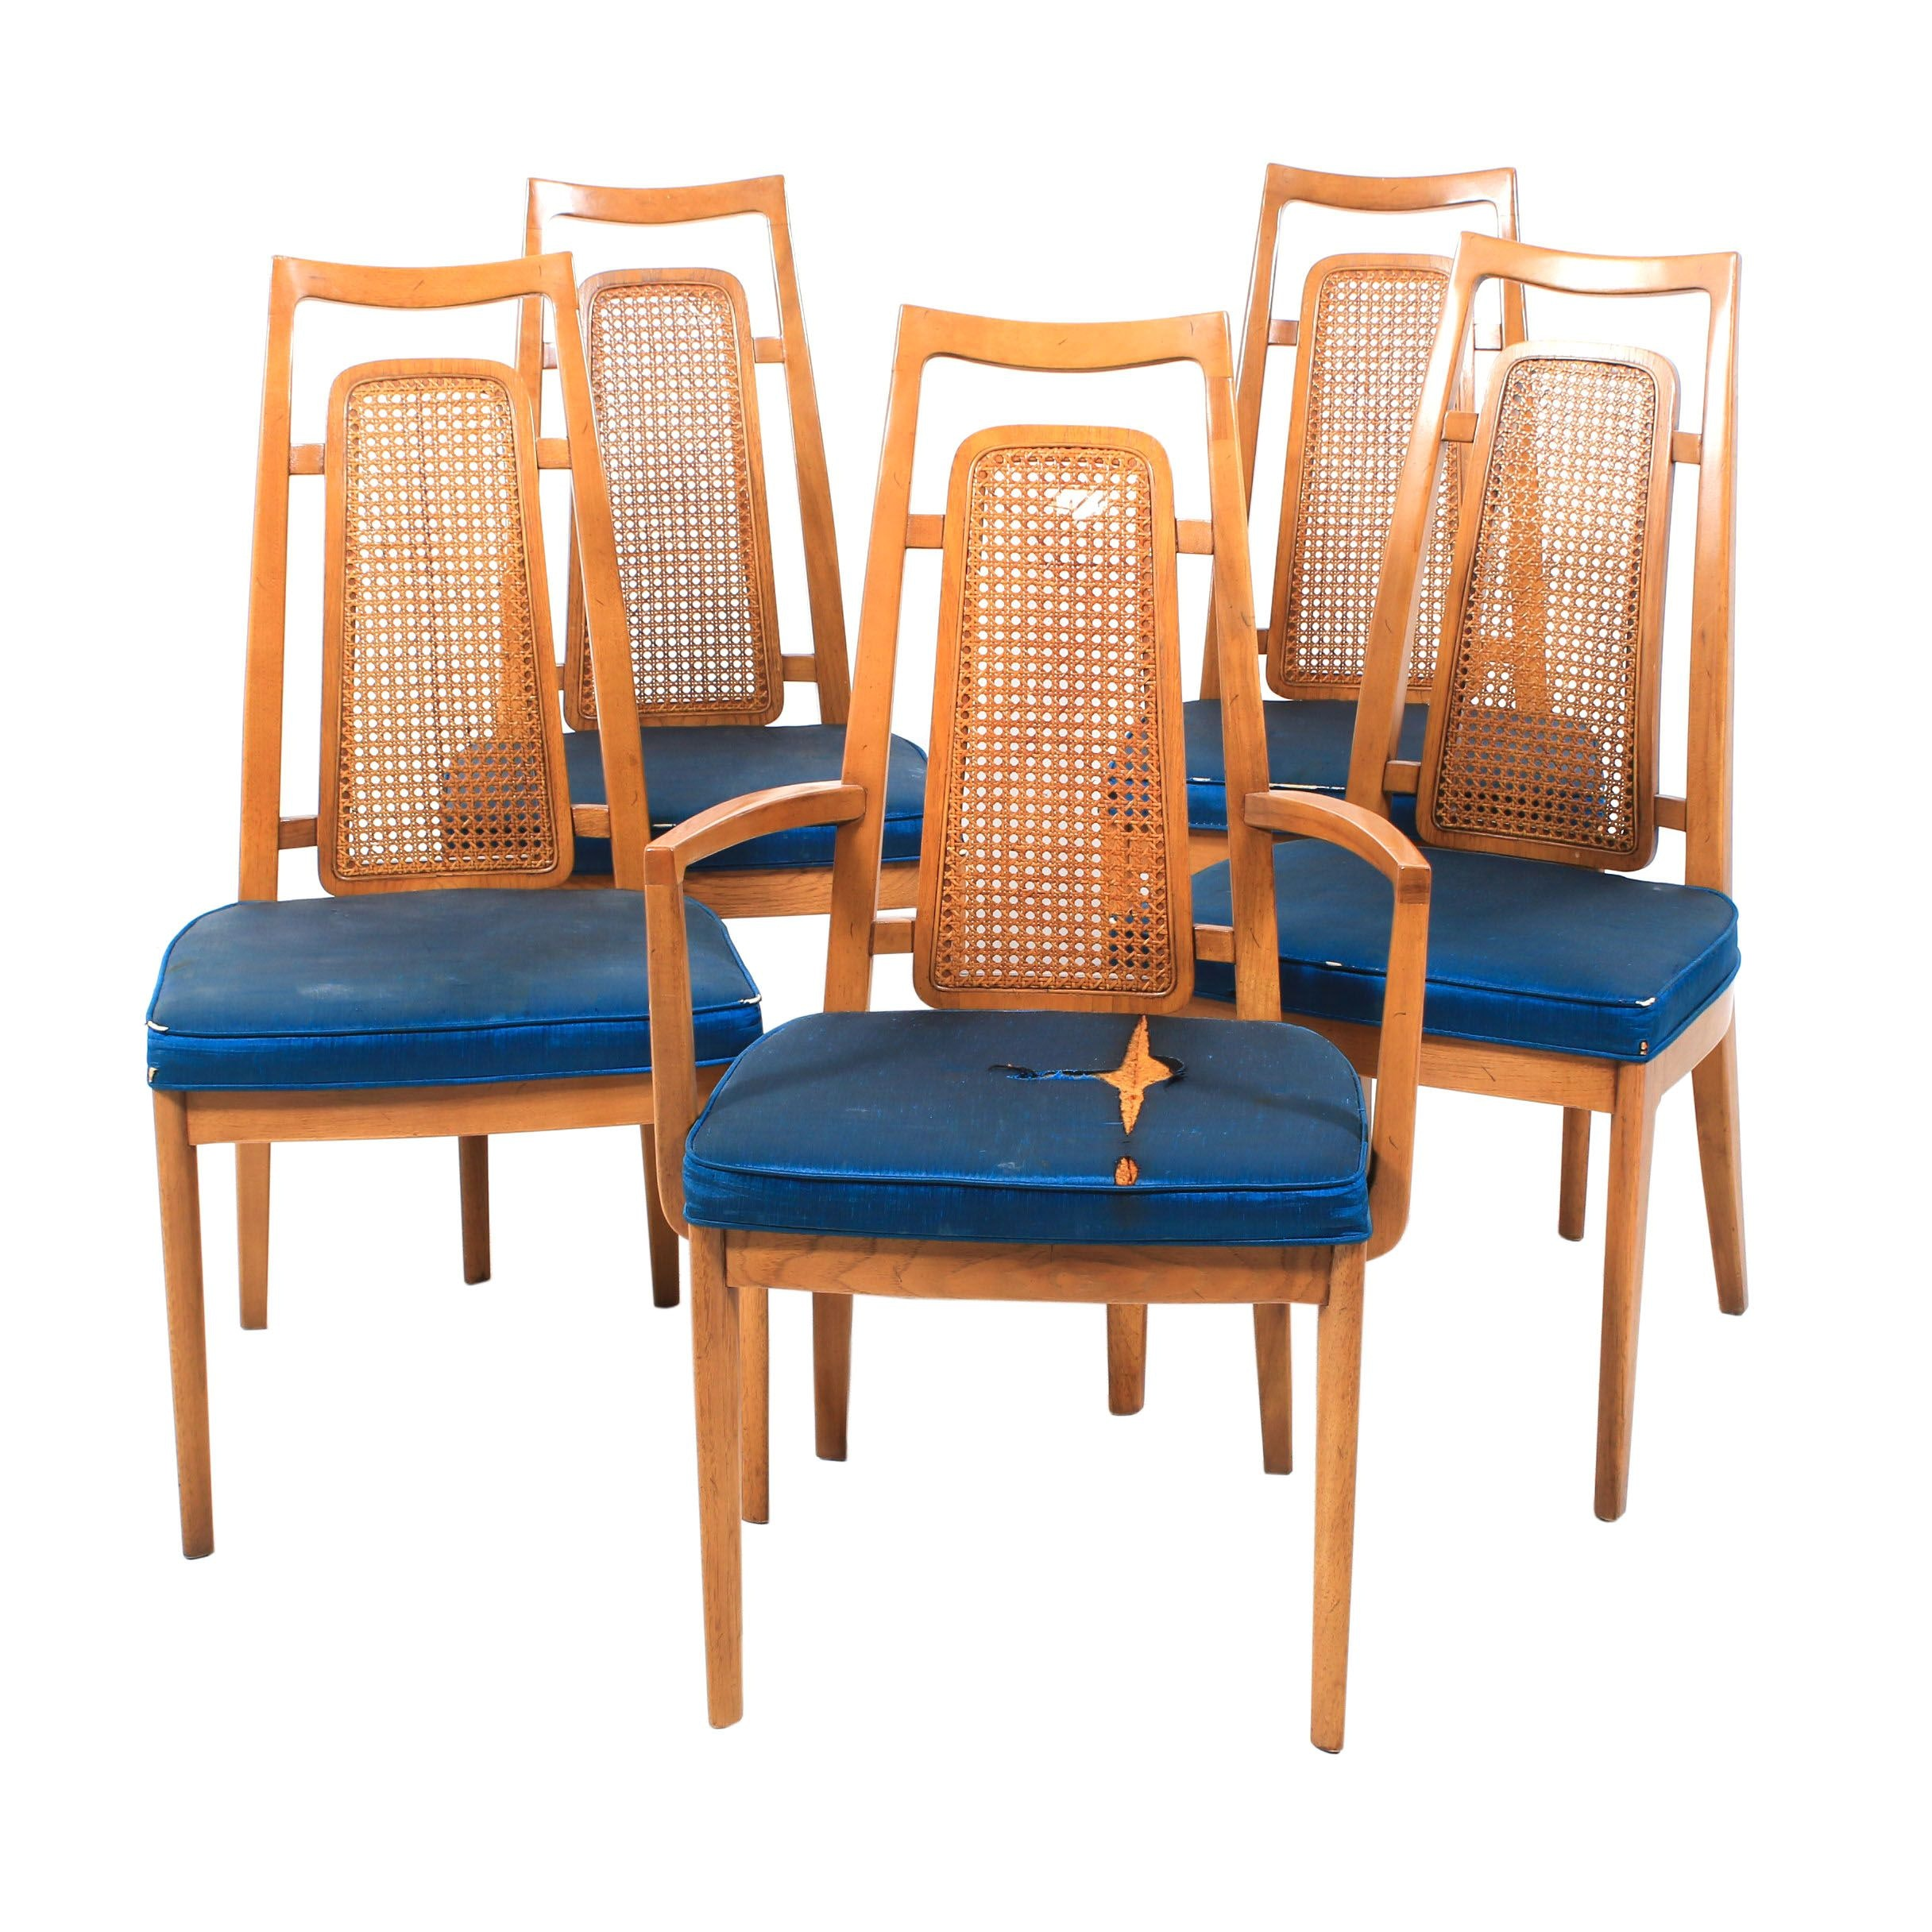 Drexel Mid Century Modern Cane Back Dining Chairs, Vintage